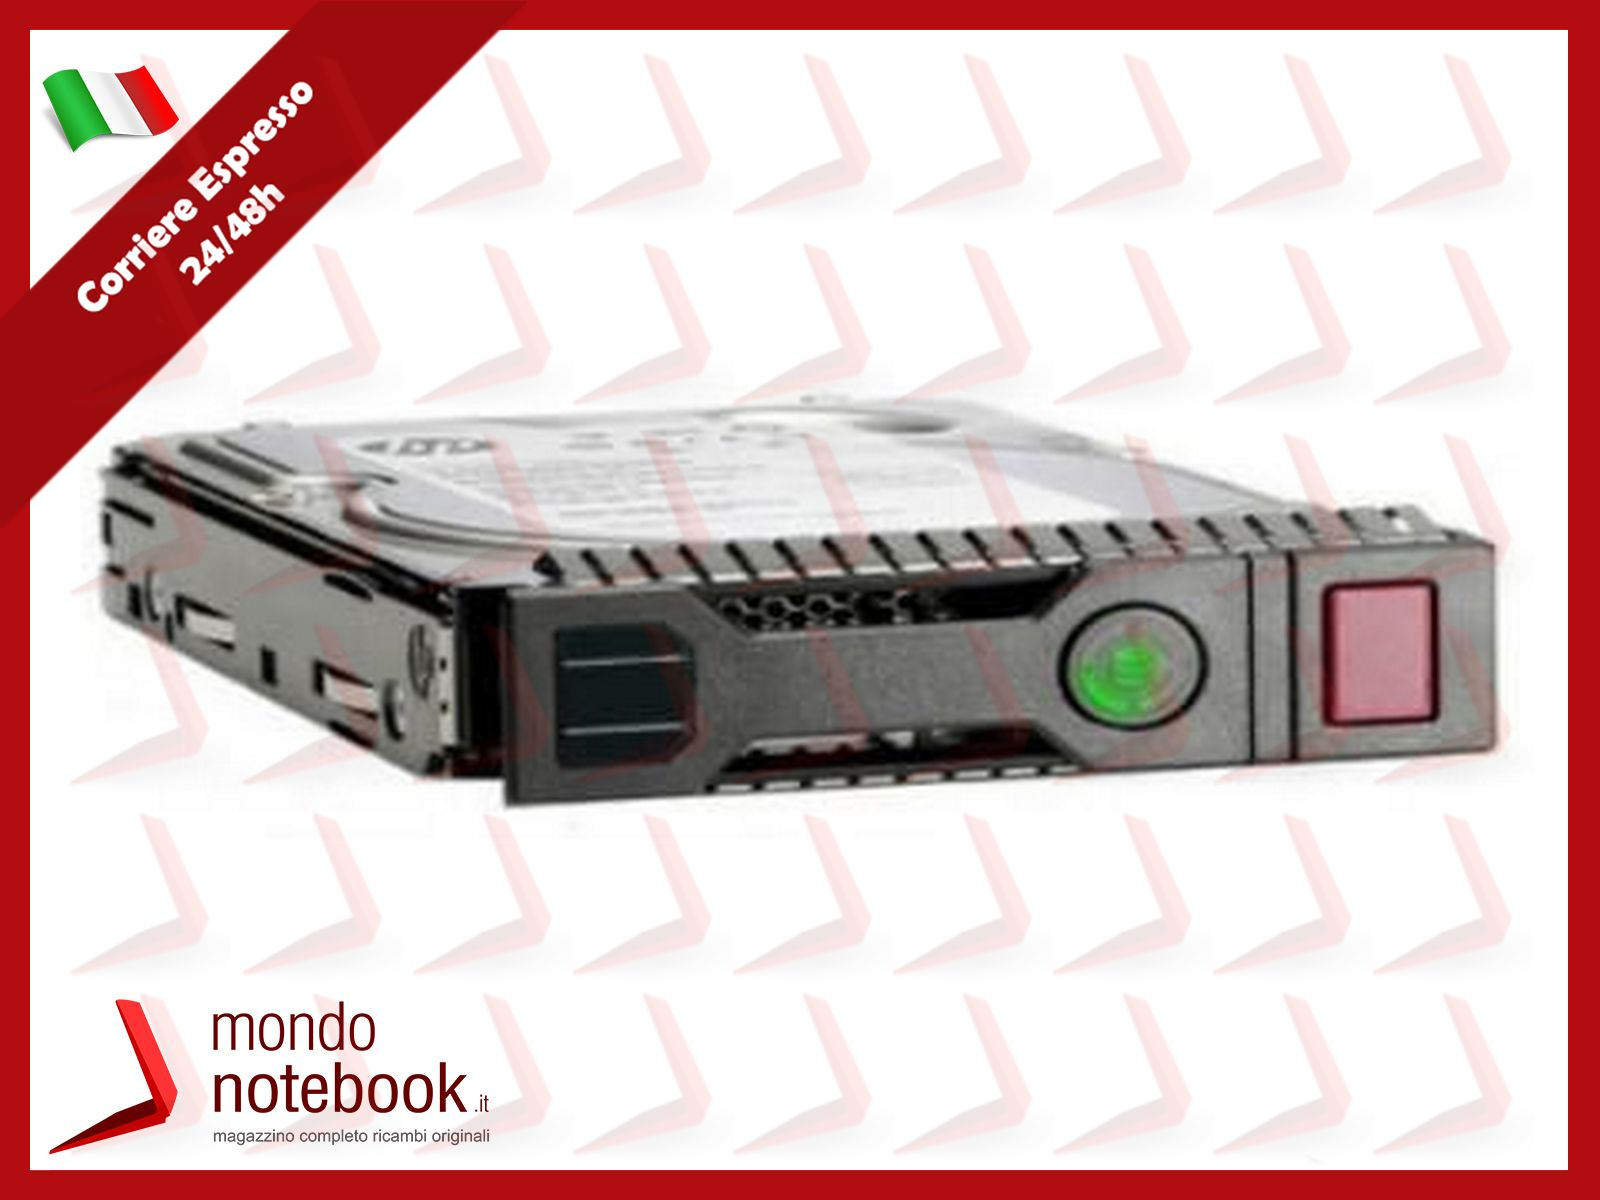 https://www.mondonotebook.it/12502/green-cell-batteria-per-toshiba-satellite-u940-u40t-u50t-m50-a-m50d-a-m50dt-m50t-114v-4160mah.jpg